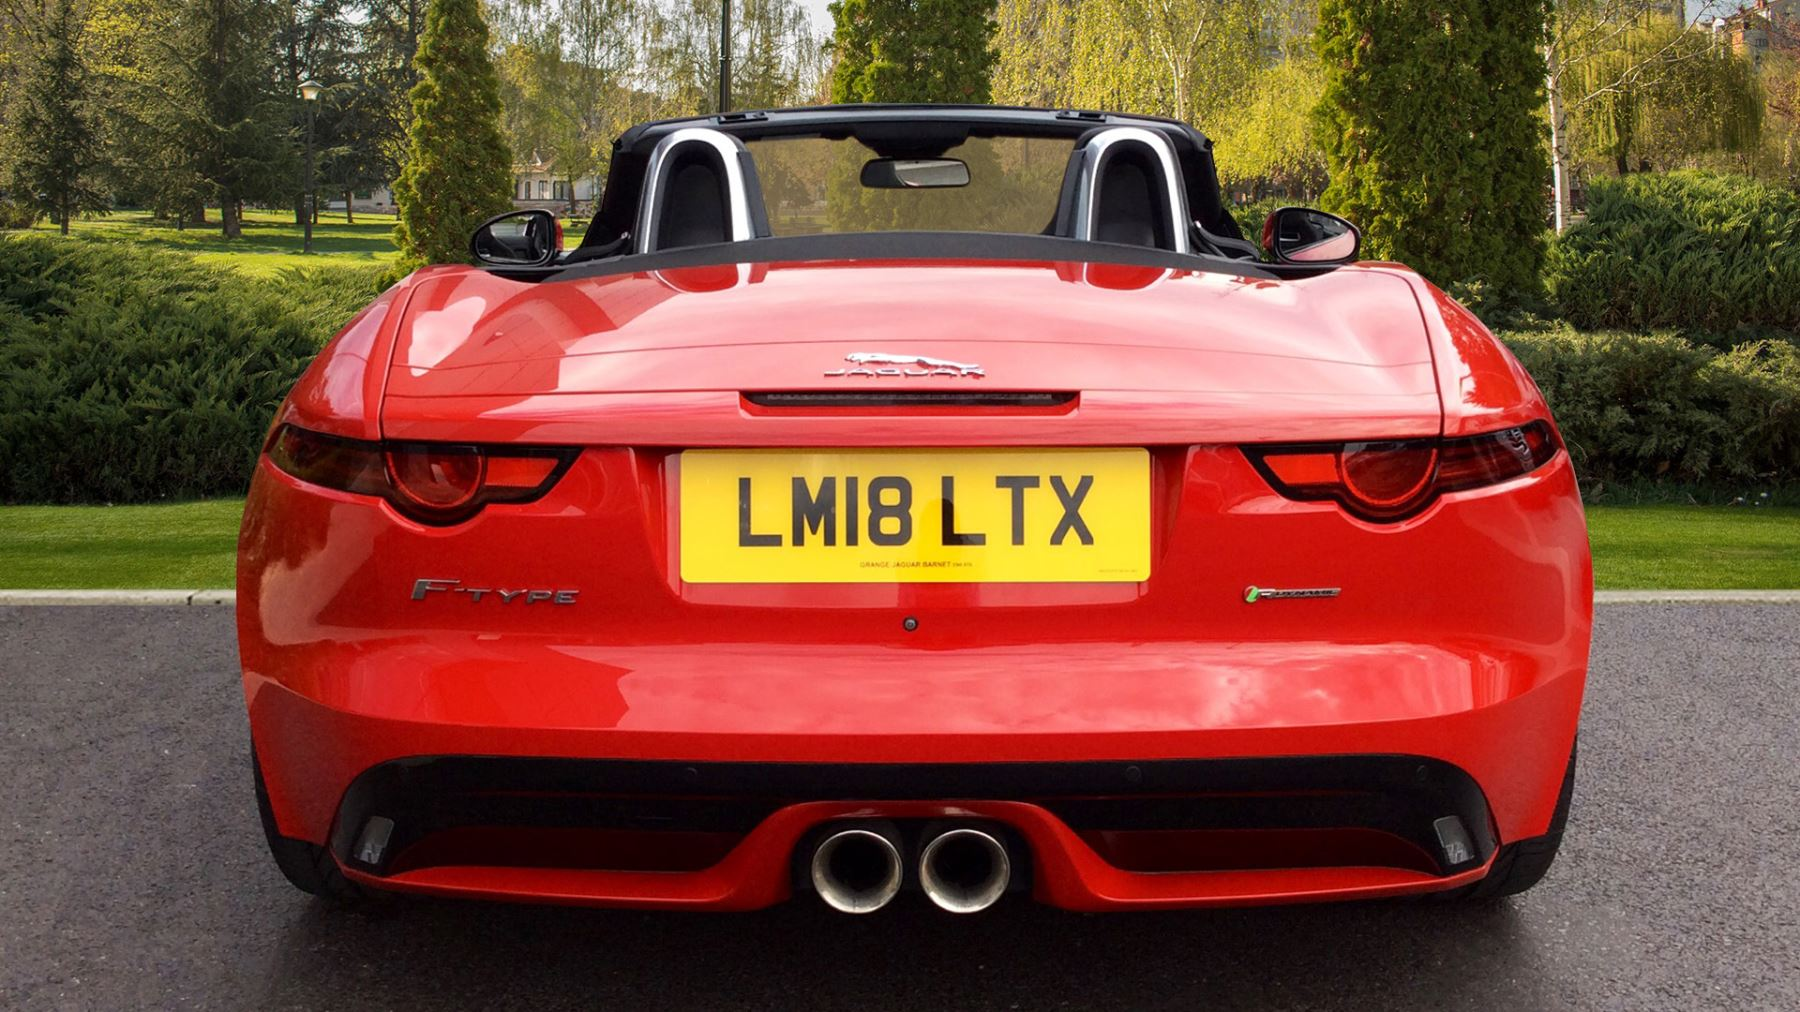 Jaguar F-TYPE 3.0 [380] Supercharged V6 R-Dynamic 2dr image 6